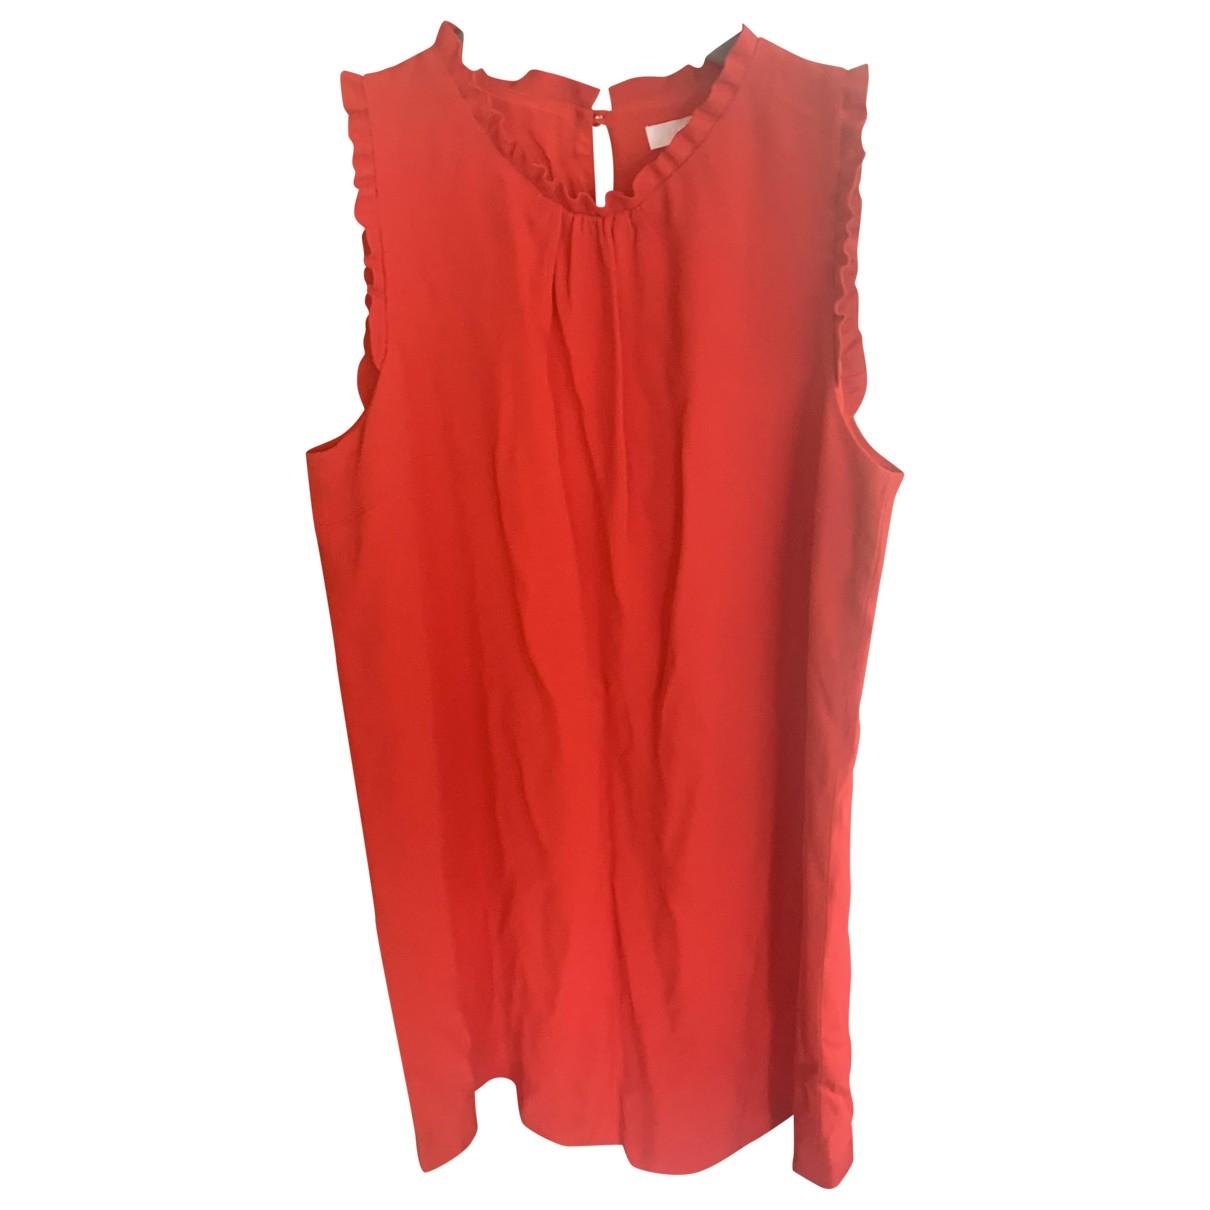 Sézane Spring Summer 2019 Red dress for Women 44 FR